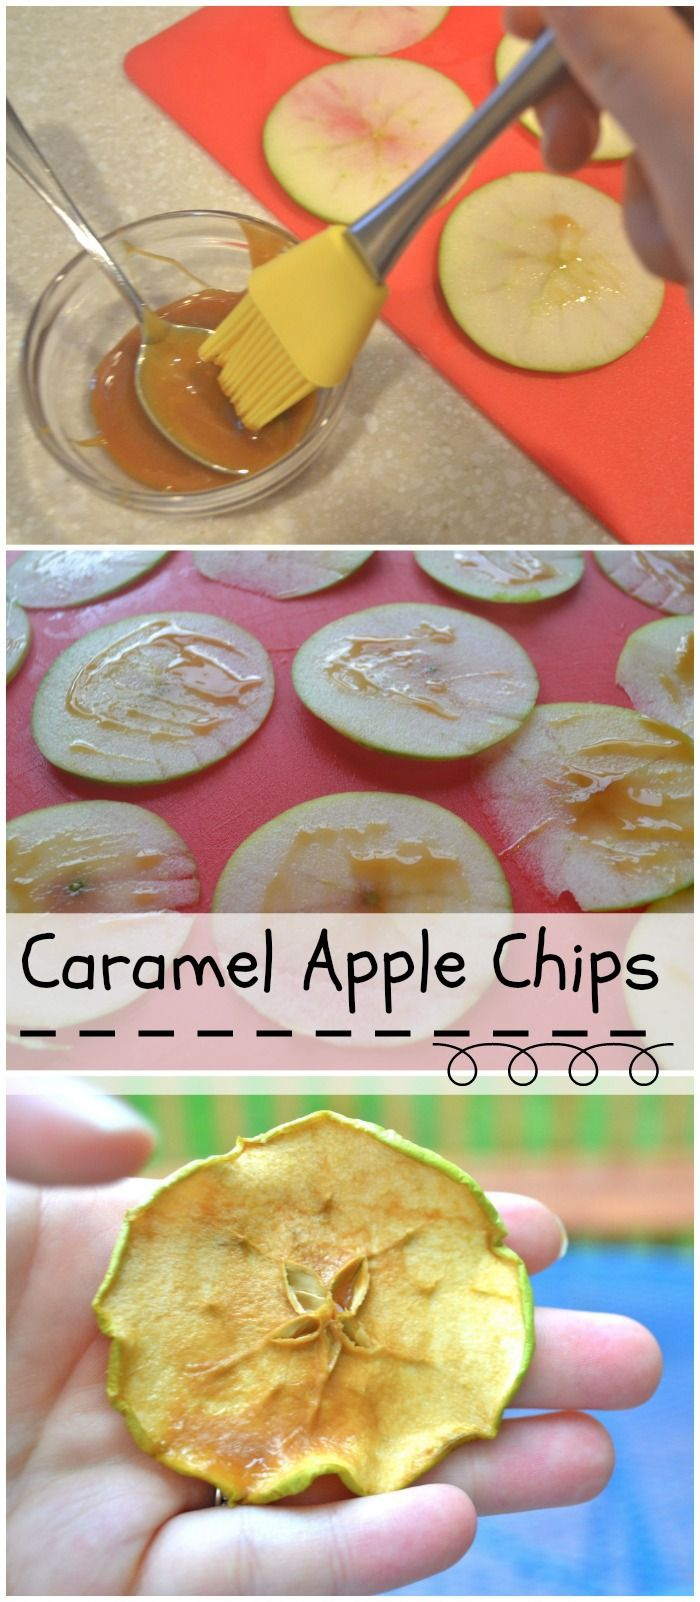 Caramel Green Apple Chips. These can be made in the oven OR your food dehydrator.